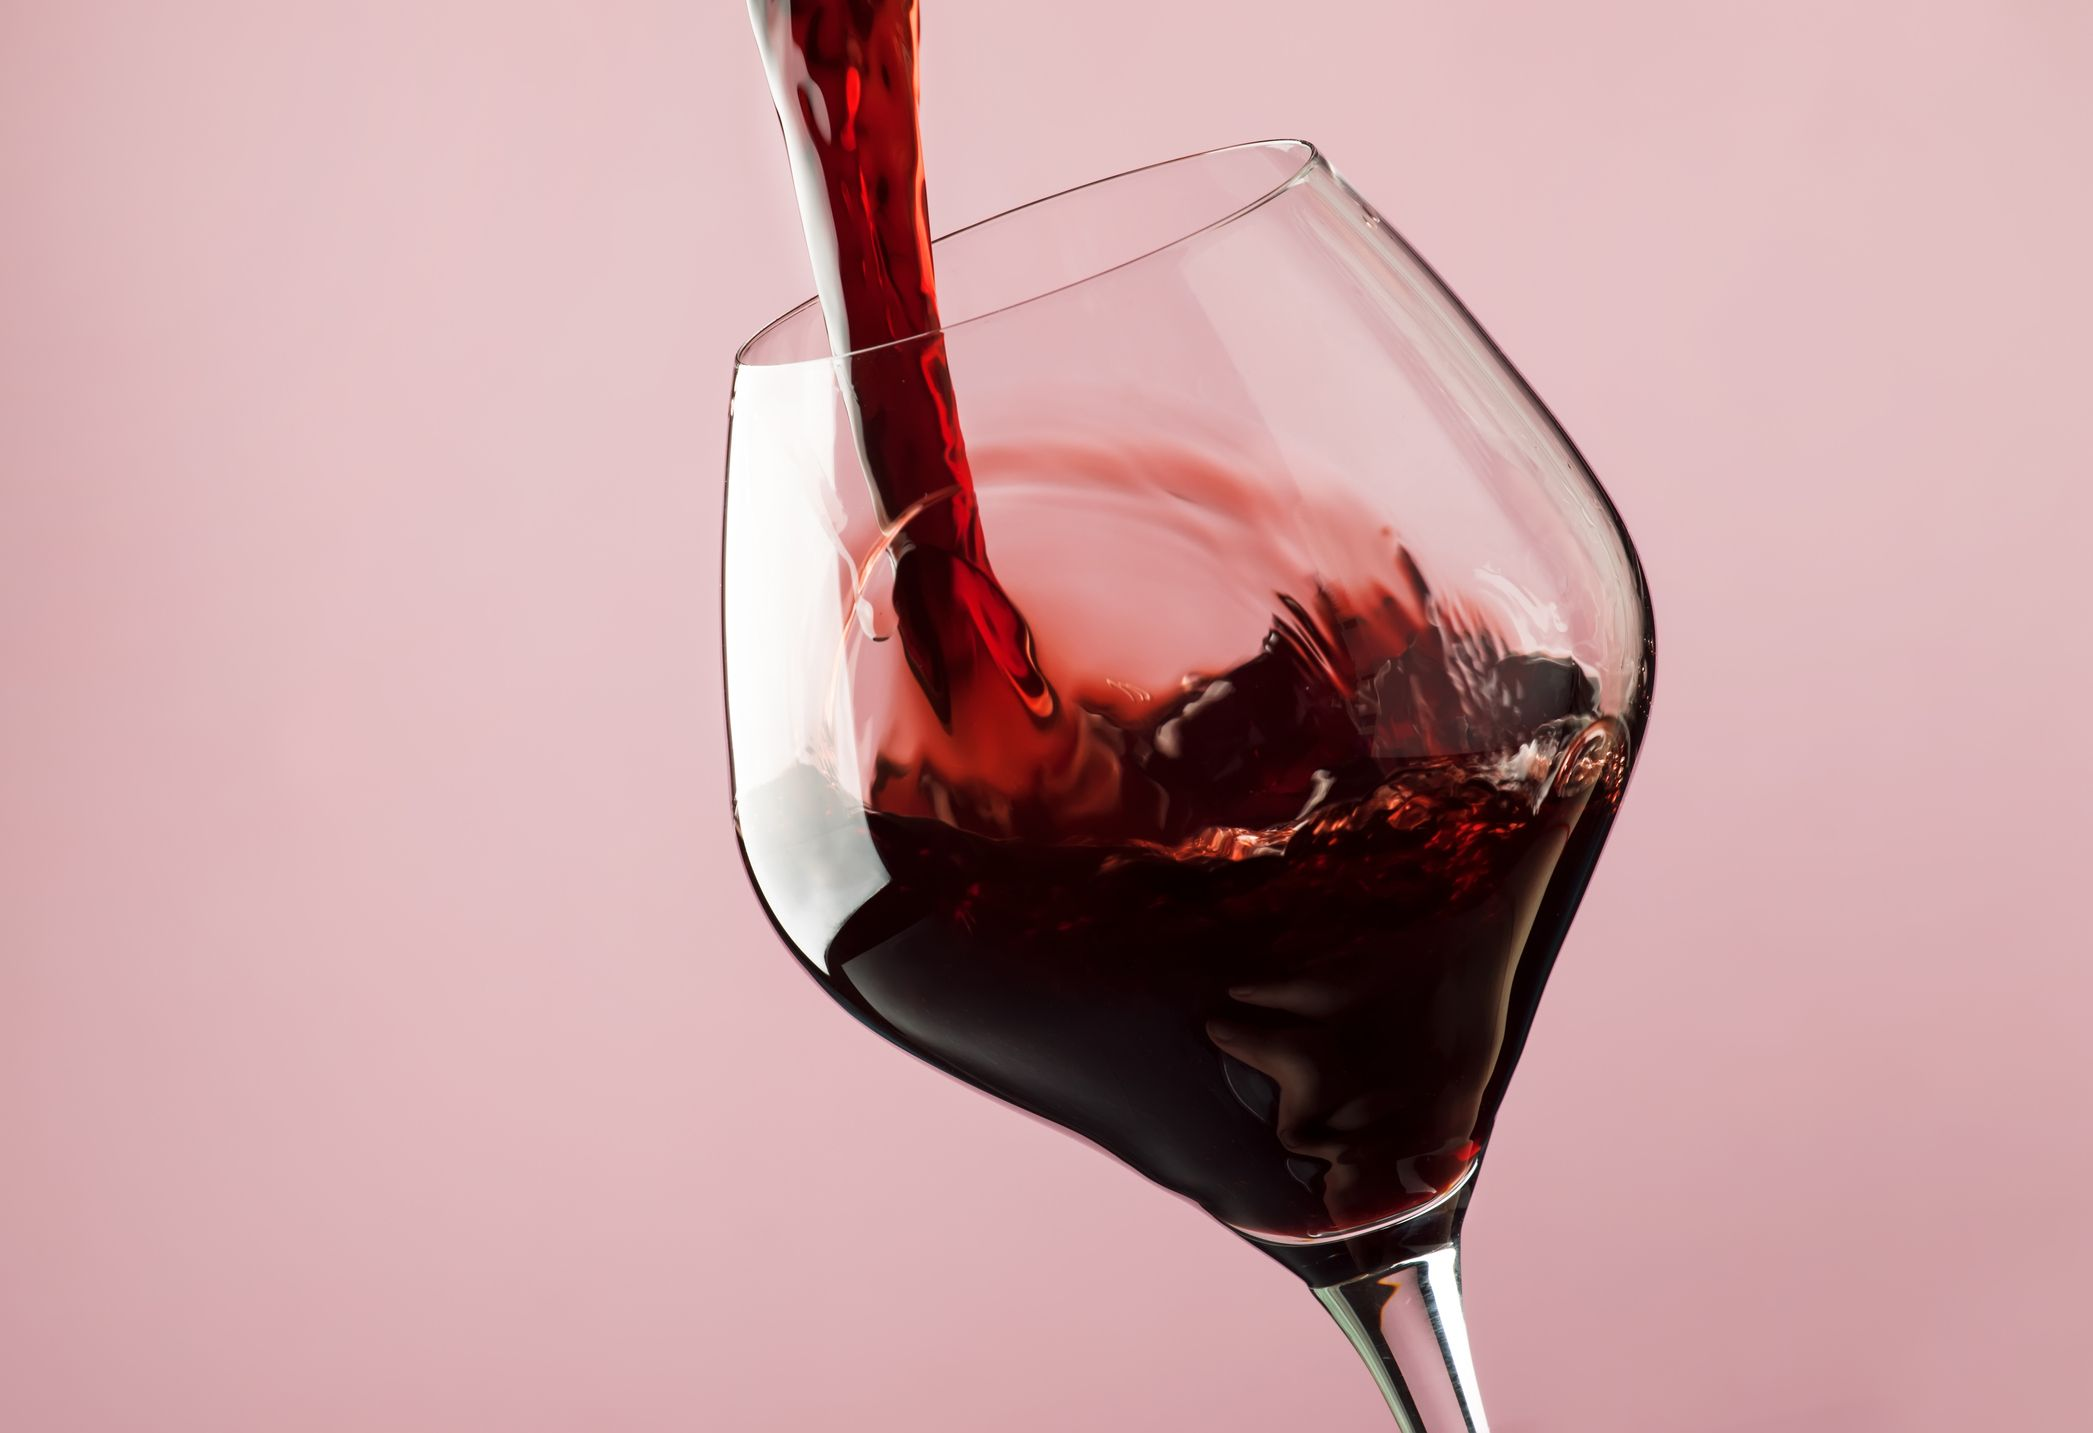 5 Red Wine Health Benefits - Why to Drink Red Wine